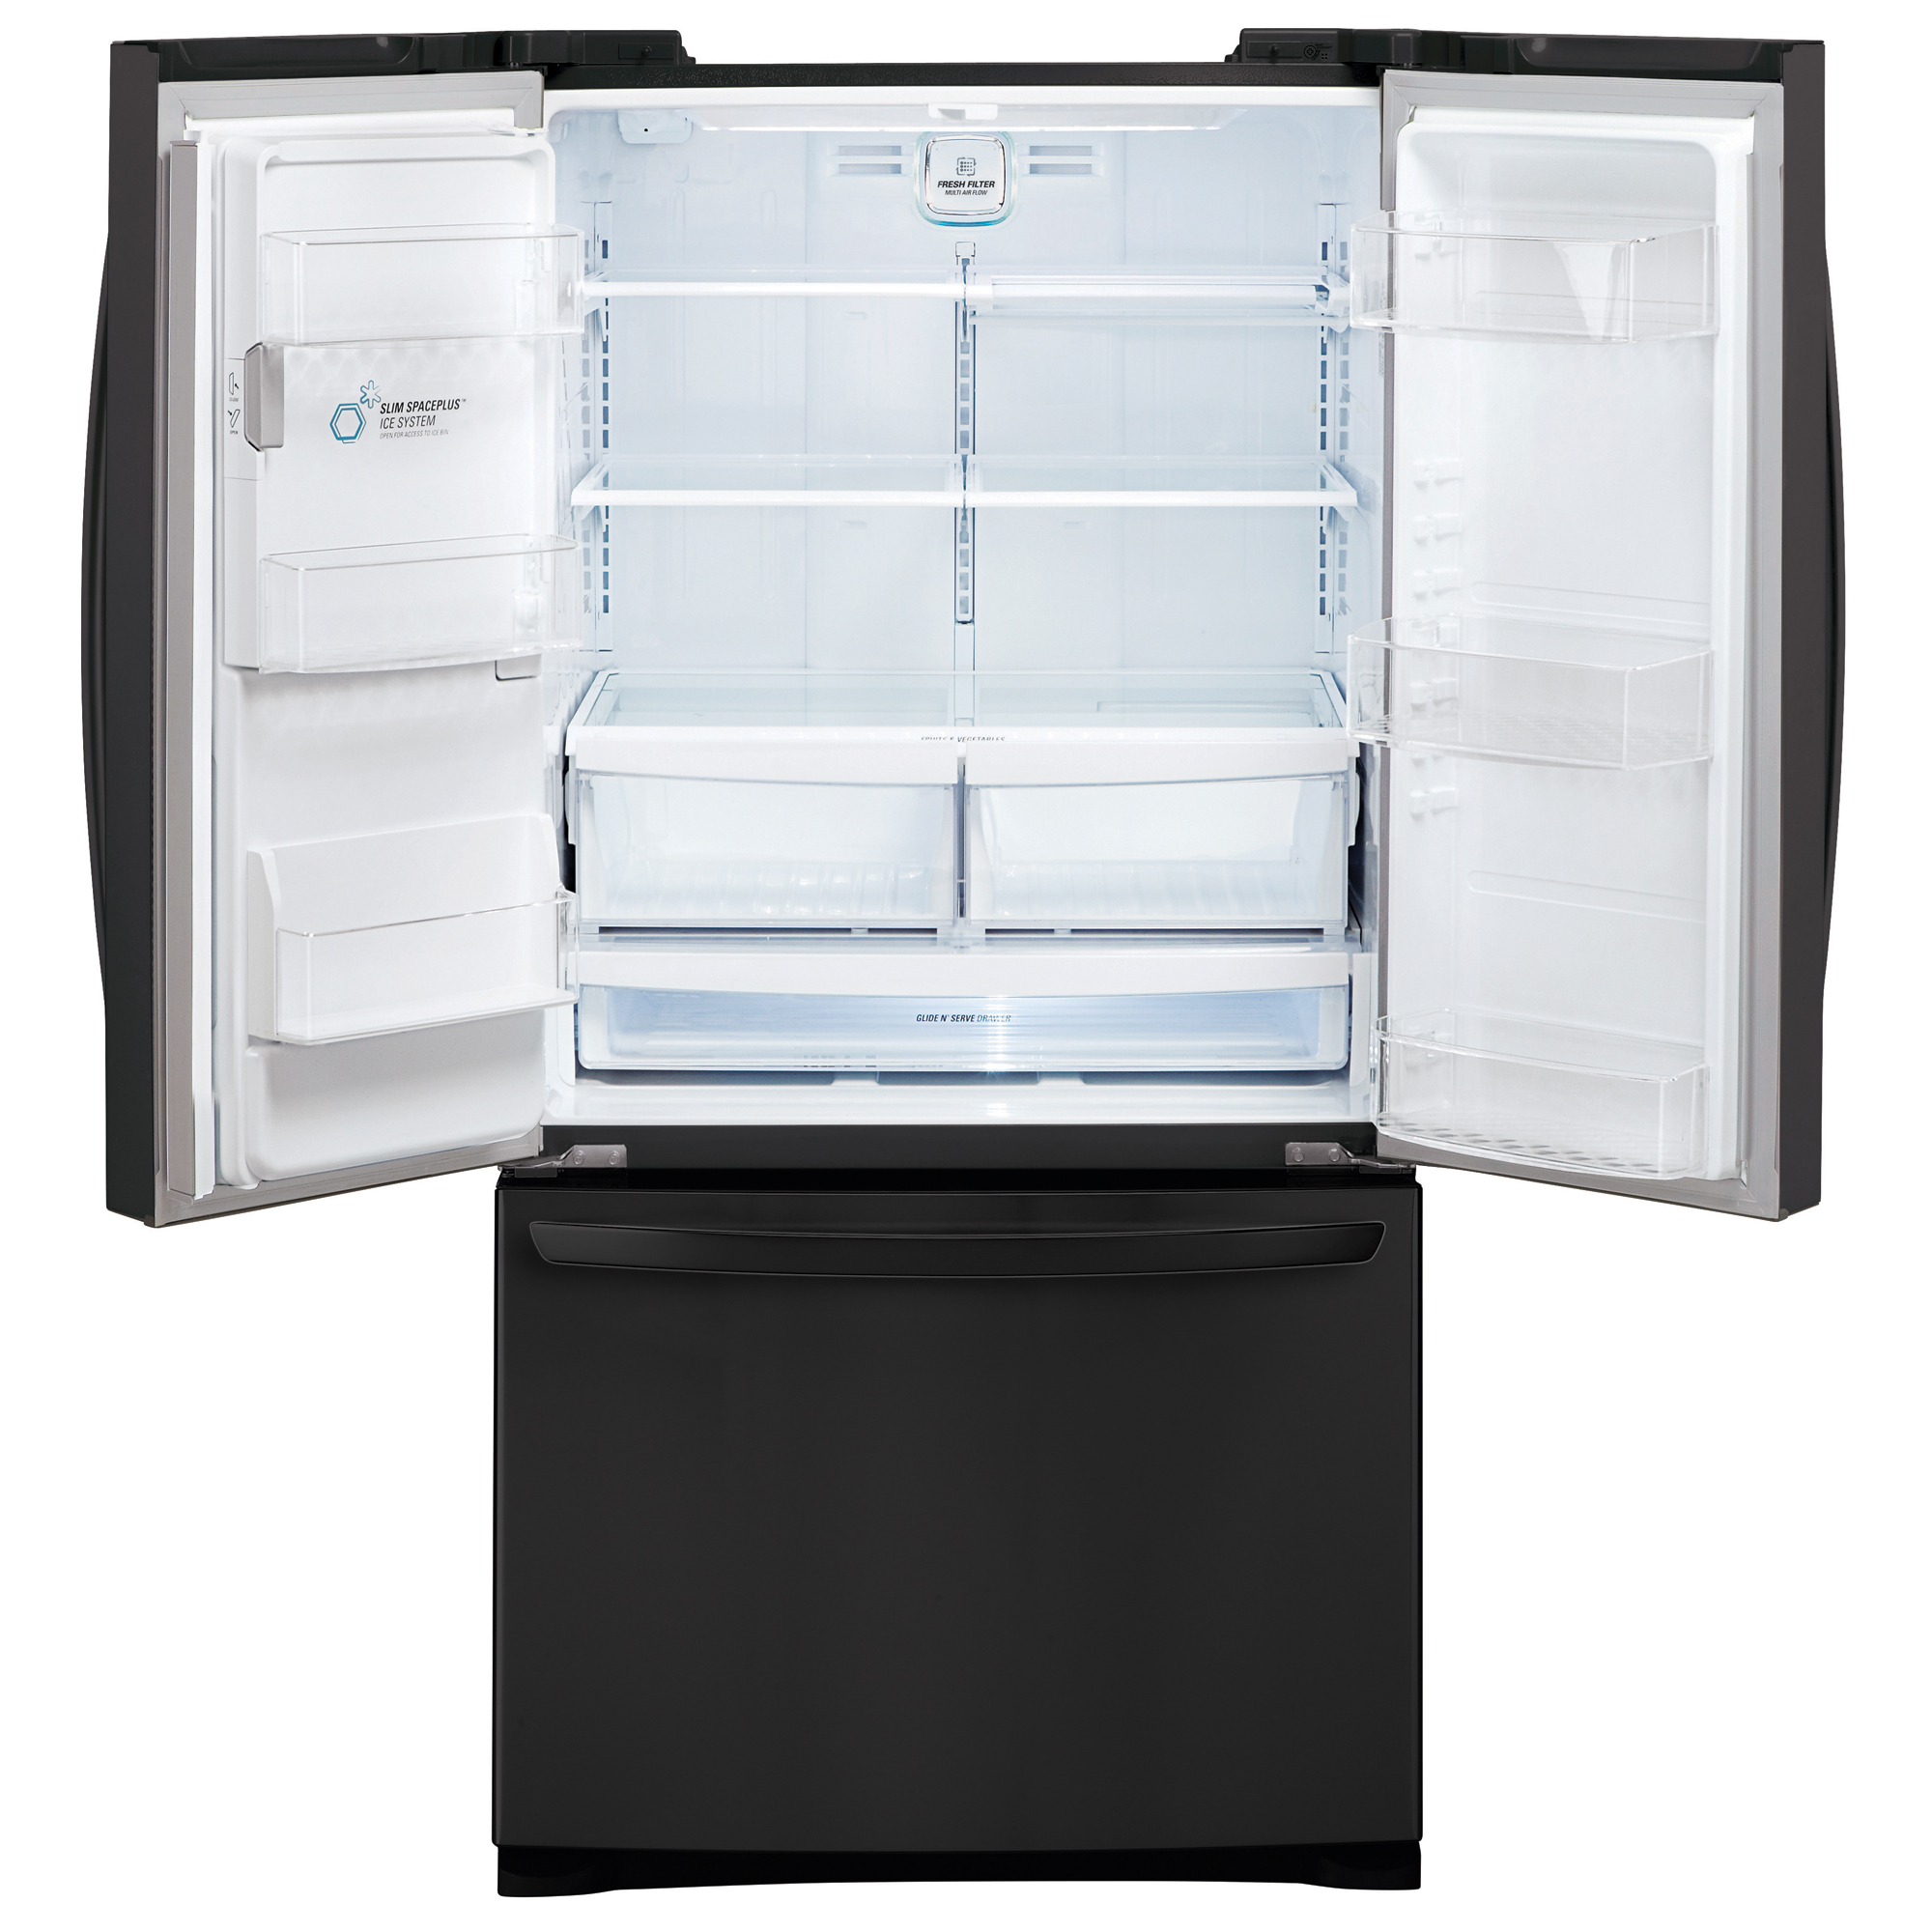 LG LFX28968SB 26.8 Cu. Ft. French Door Bottom-Freezer Refrigerator